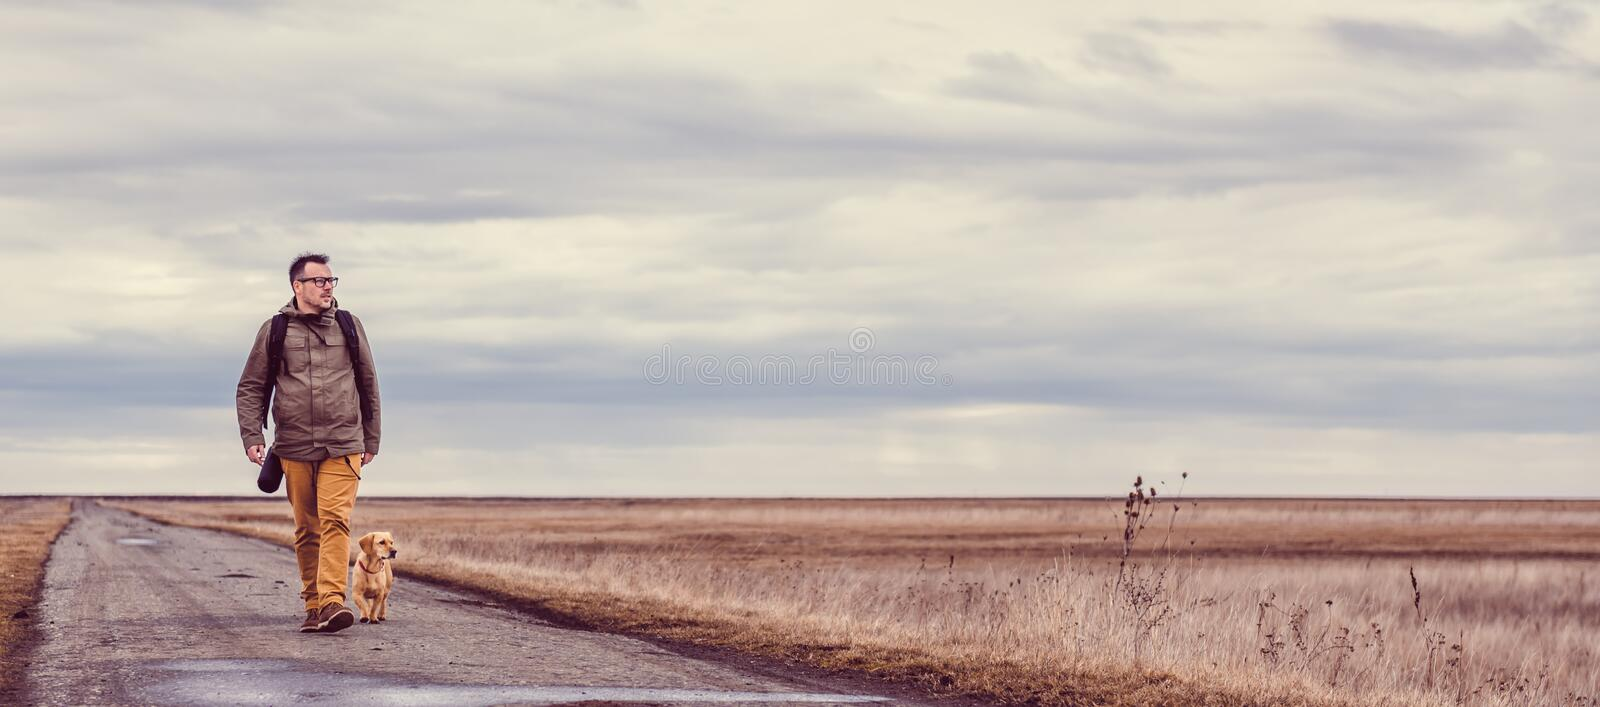 Hiker and dog walking on the road. Hiker and dog walking down a road on a cloudy day stock photography